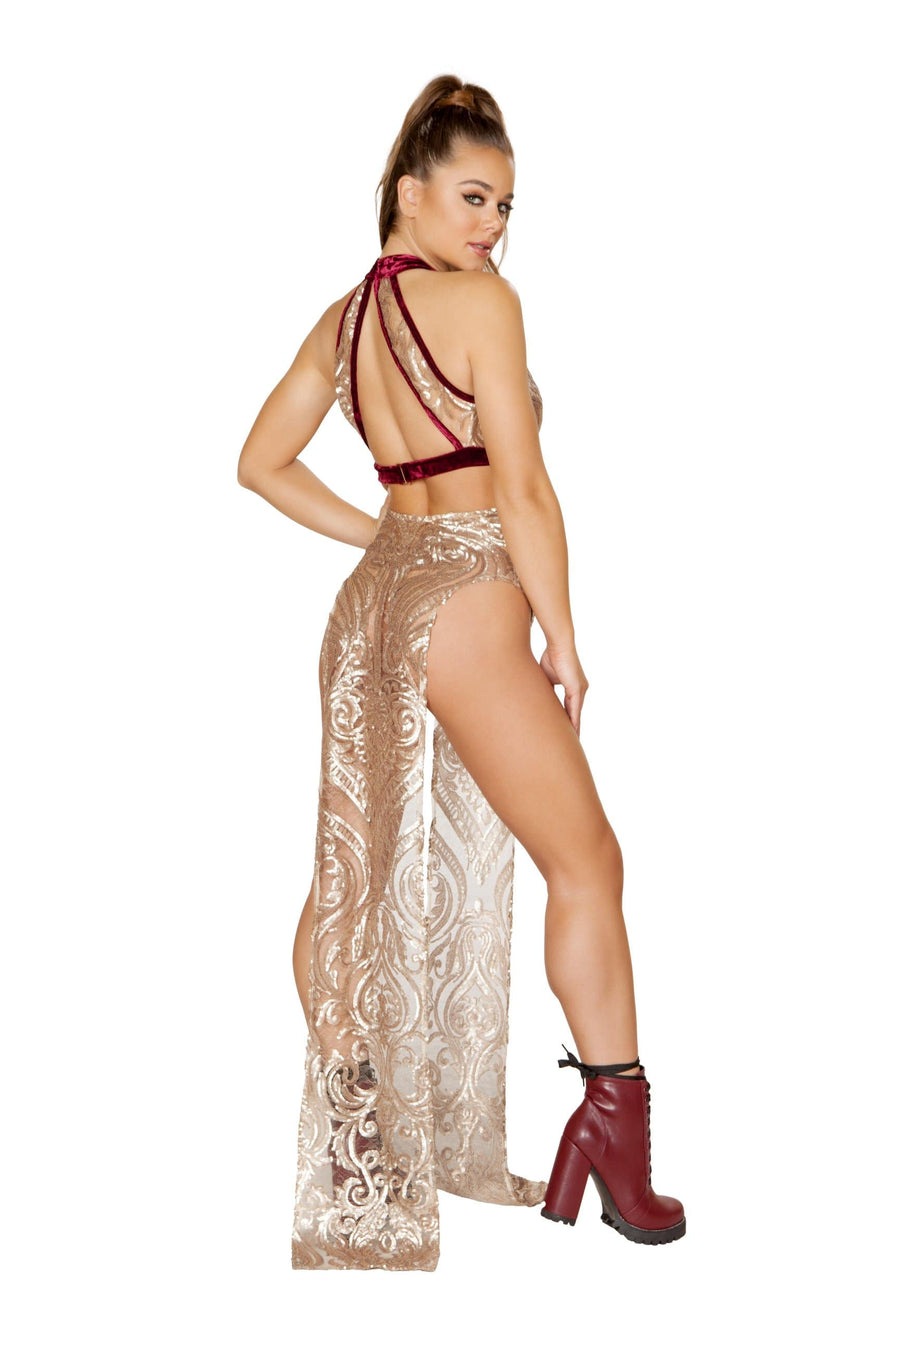 Roma Small / Red Rose Gold 1pc Sequin Top w/ Large Keyhole SHC-3596-RED-S Rose Gold 1pc Sequin Keyhole Top | ROMA COSTUME 3596 Apparel & Accessories > Clothing > Shirts & Tops